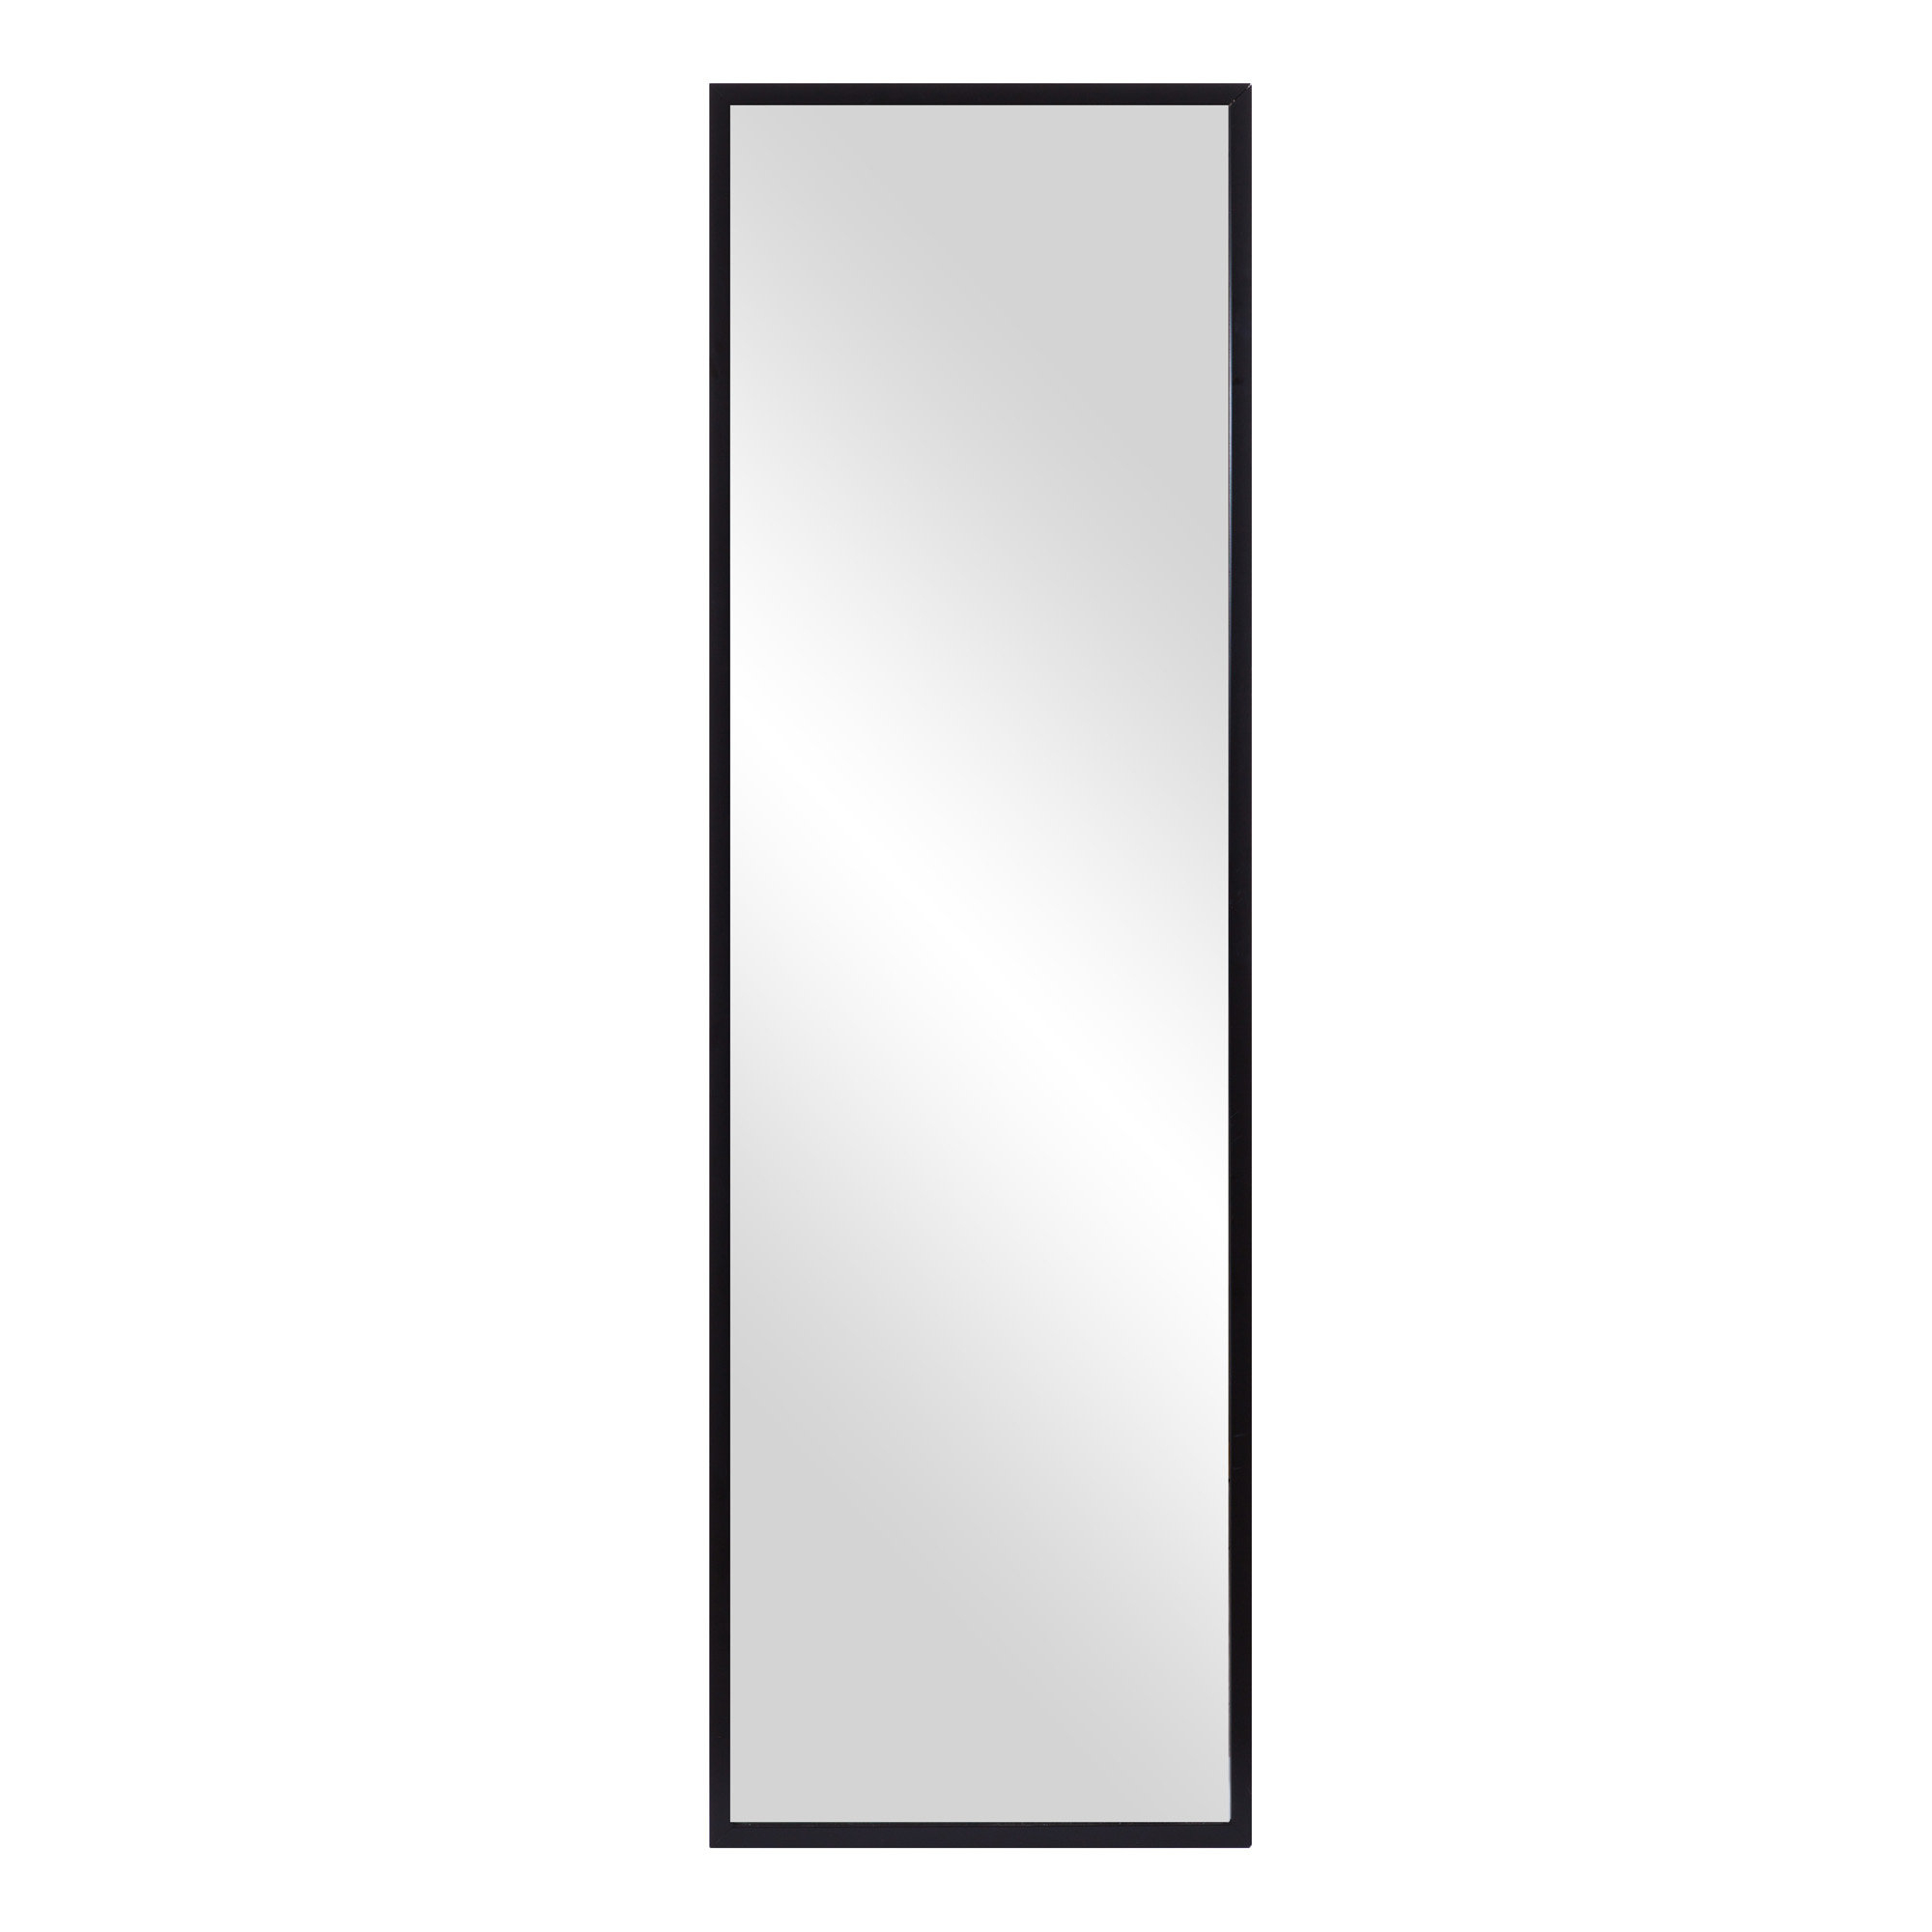 Mcgary Free Standing Floor Modern & Contemporary Full Length Mirror With Modern & Contemporary Full Length Mirrors (View 7 of 30)